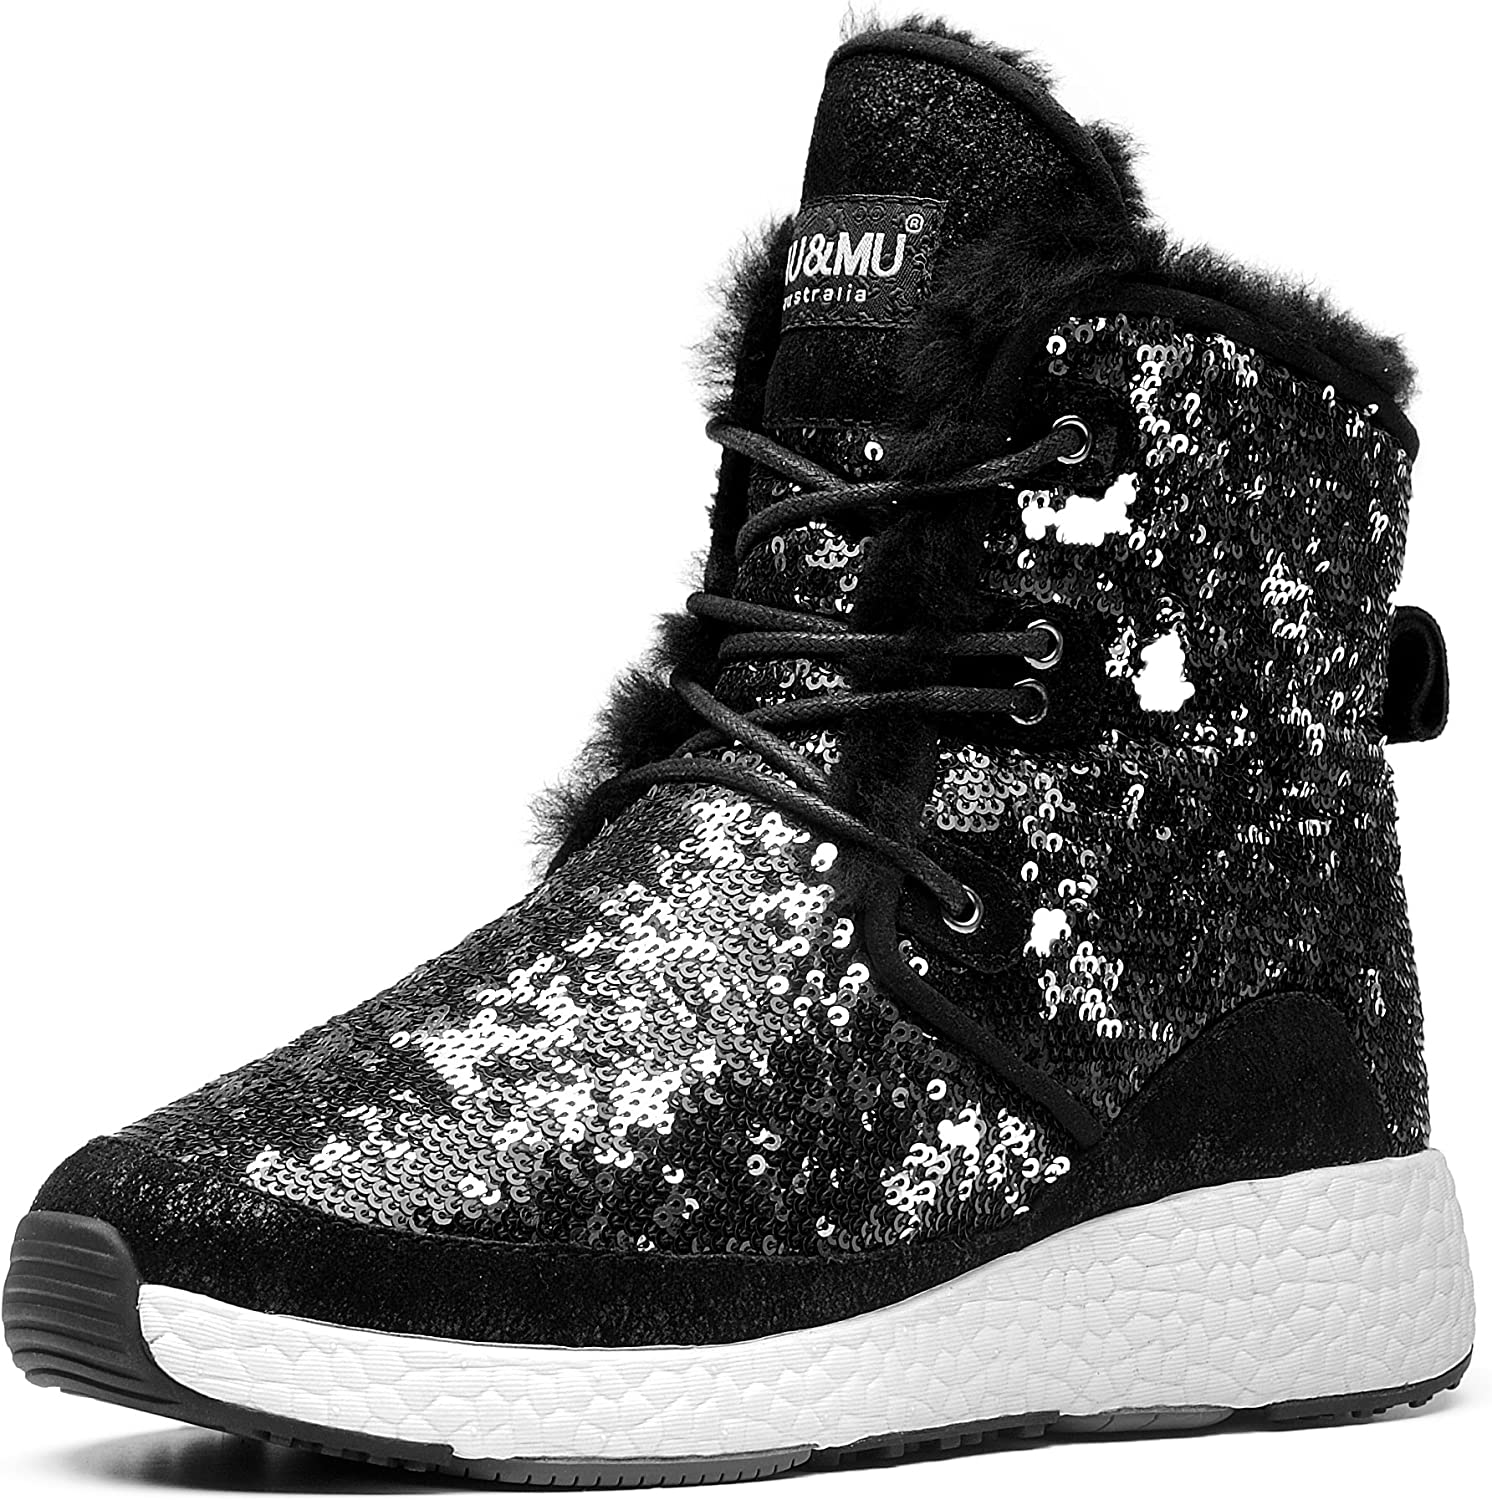 Aumu Sheepskin Taurus Metal Buckle Brass Eyelets Suede Upper Laces Winter Snow Boots